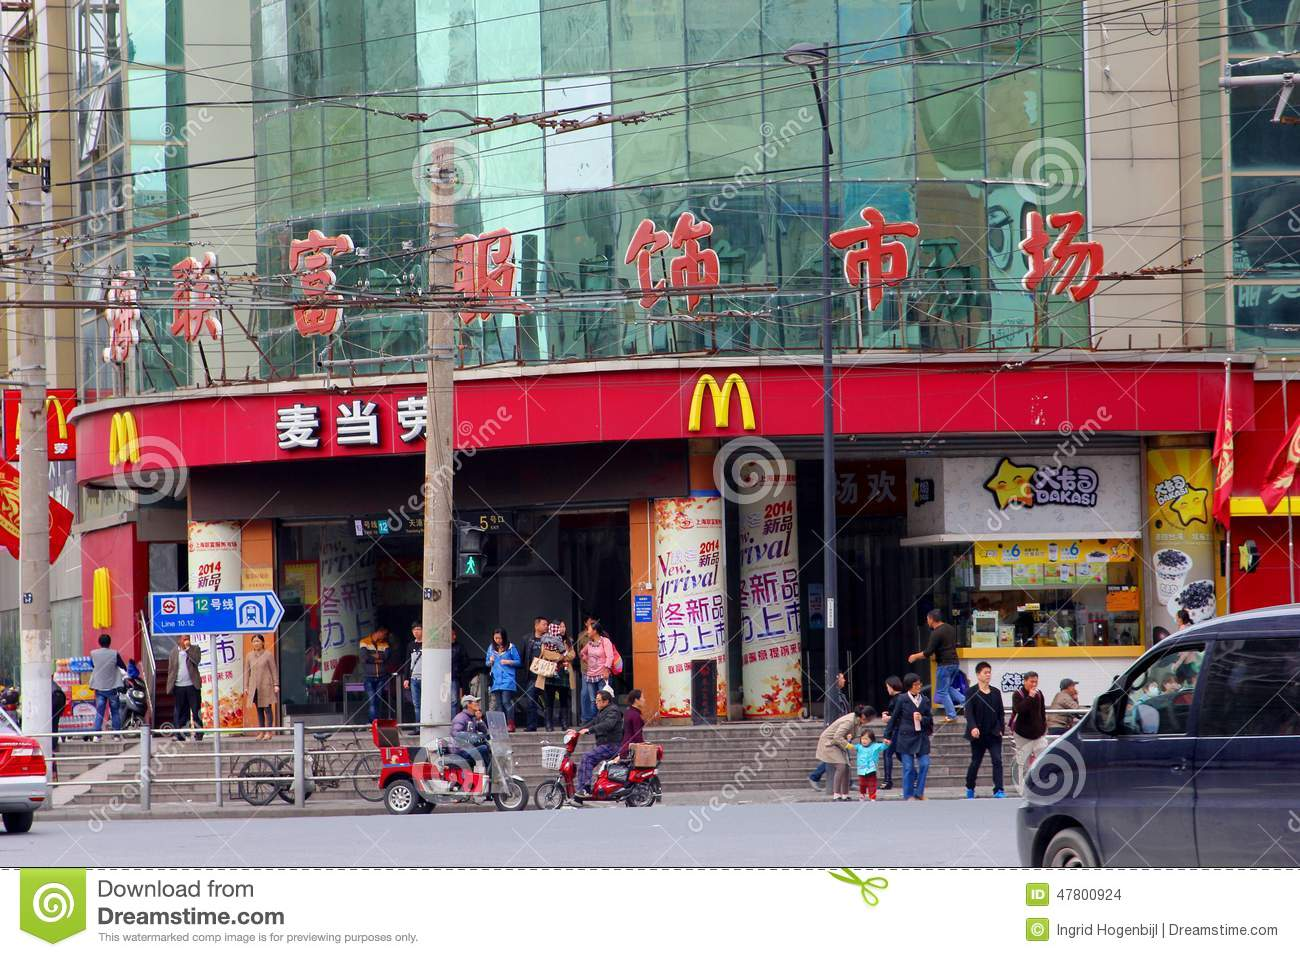 mcdonald in china This is a listing of countries with mcdonald's restaurants mcdonald's is the largest chain of fast food restaurants in the world it has more than 35,000 outlets.